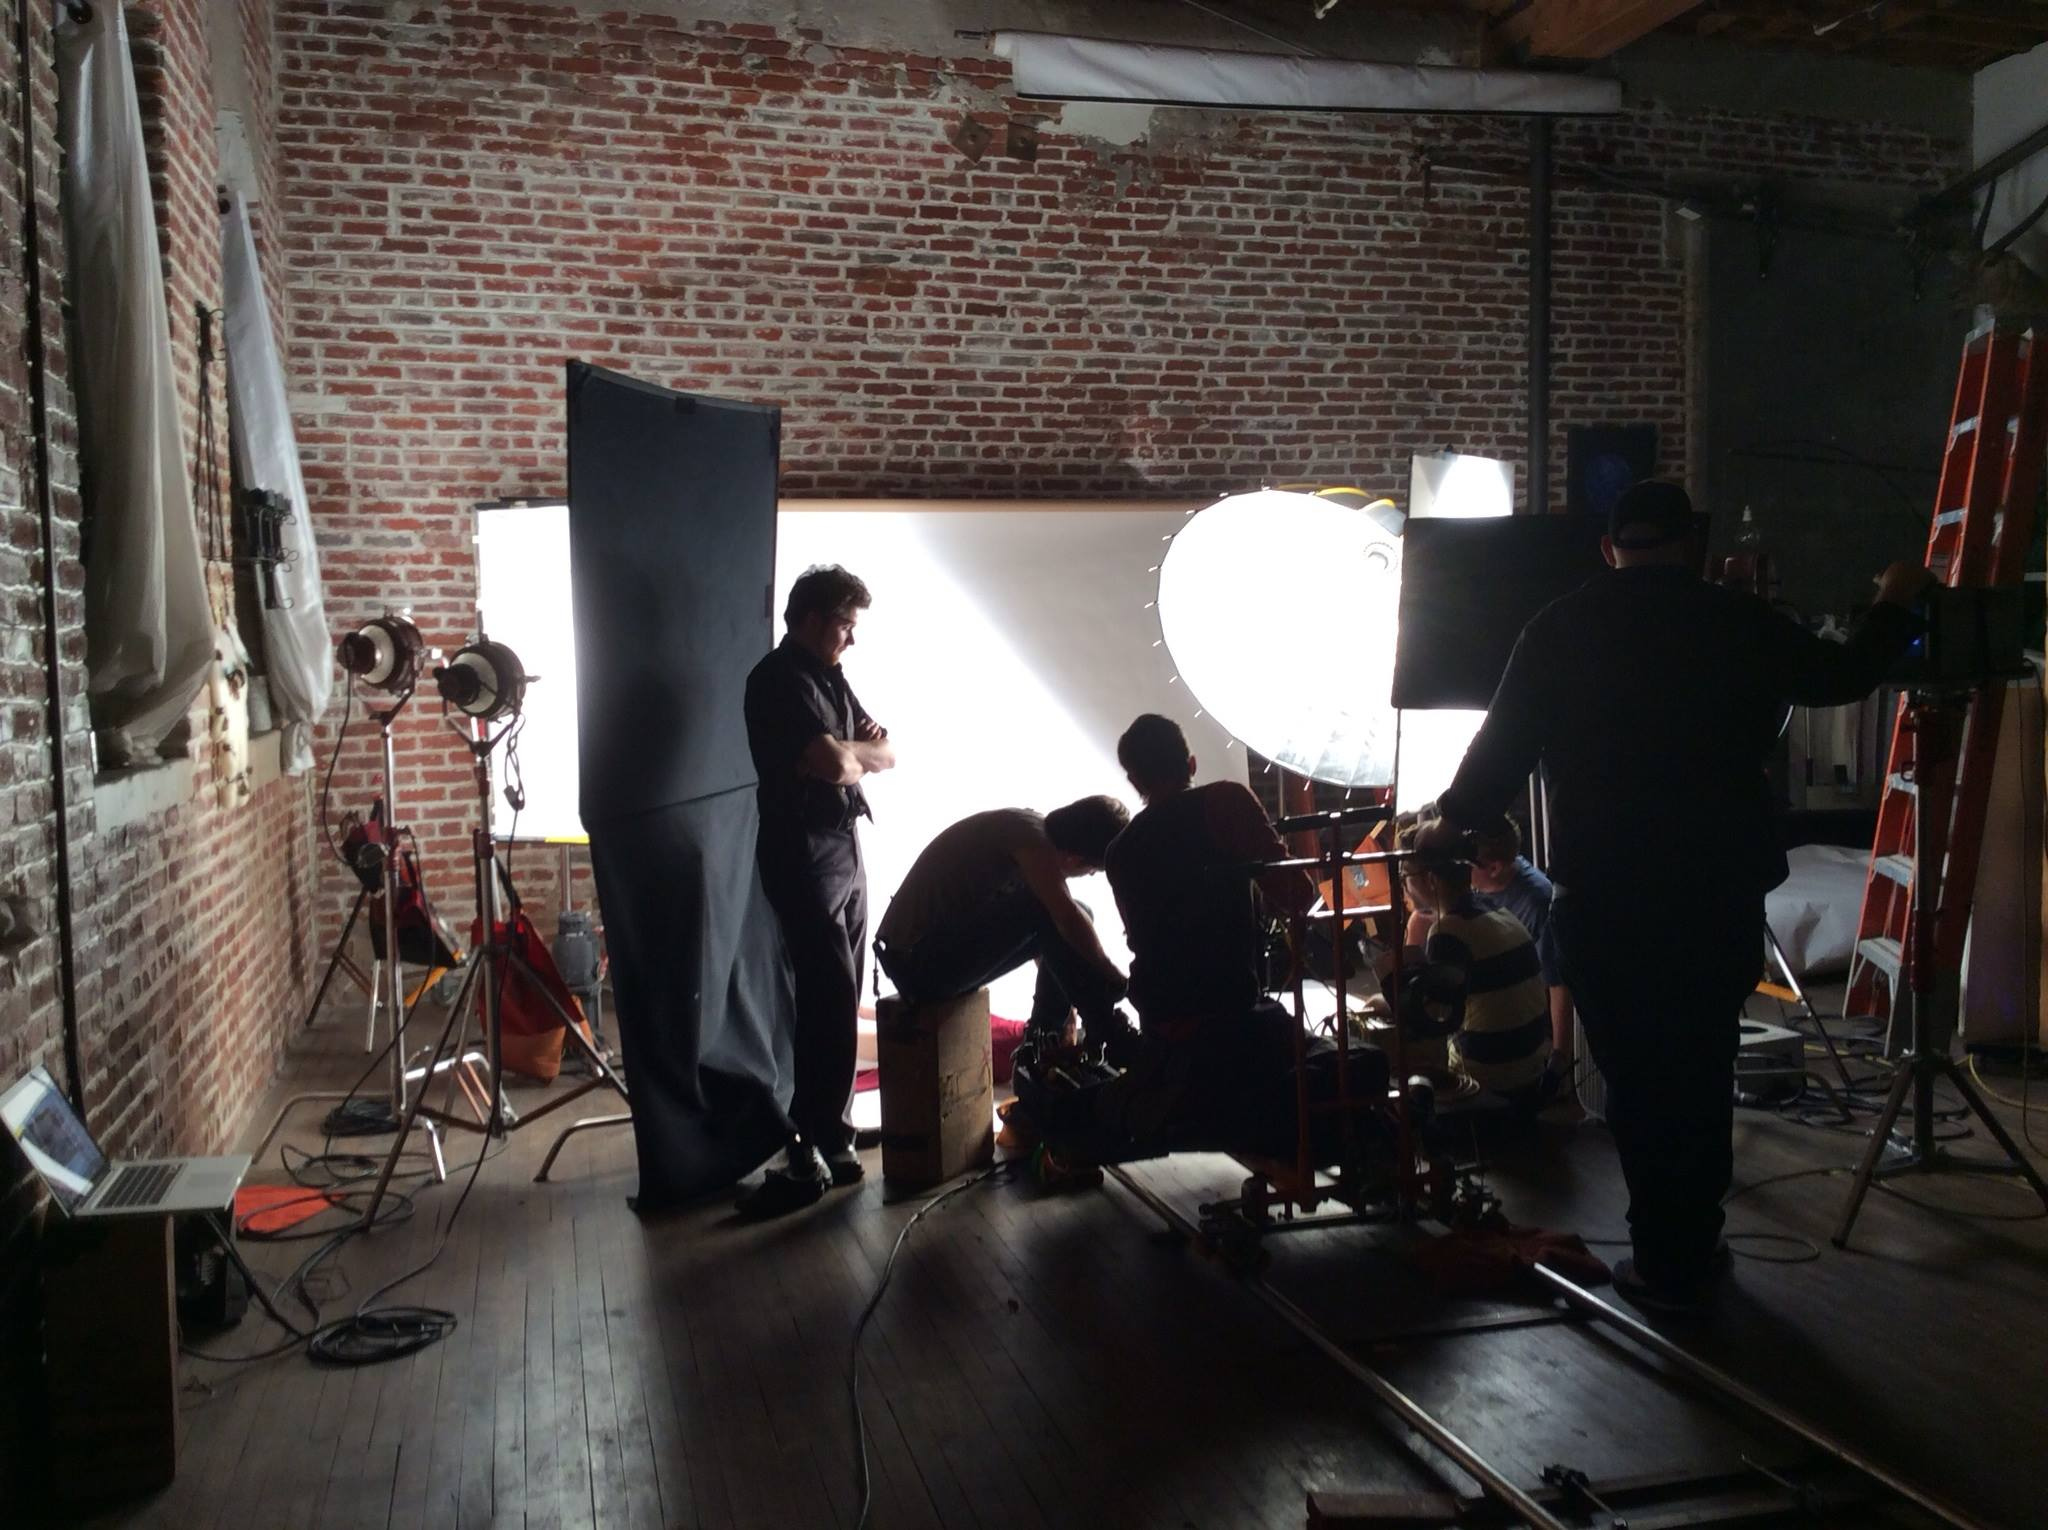 Lighting is one of the most important requirements in making a quality film. Lighting on set is a vital part to building a good scene. & Importance of Lighting for Film \u2013 Movie Maker Central